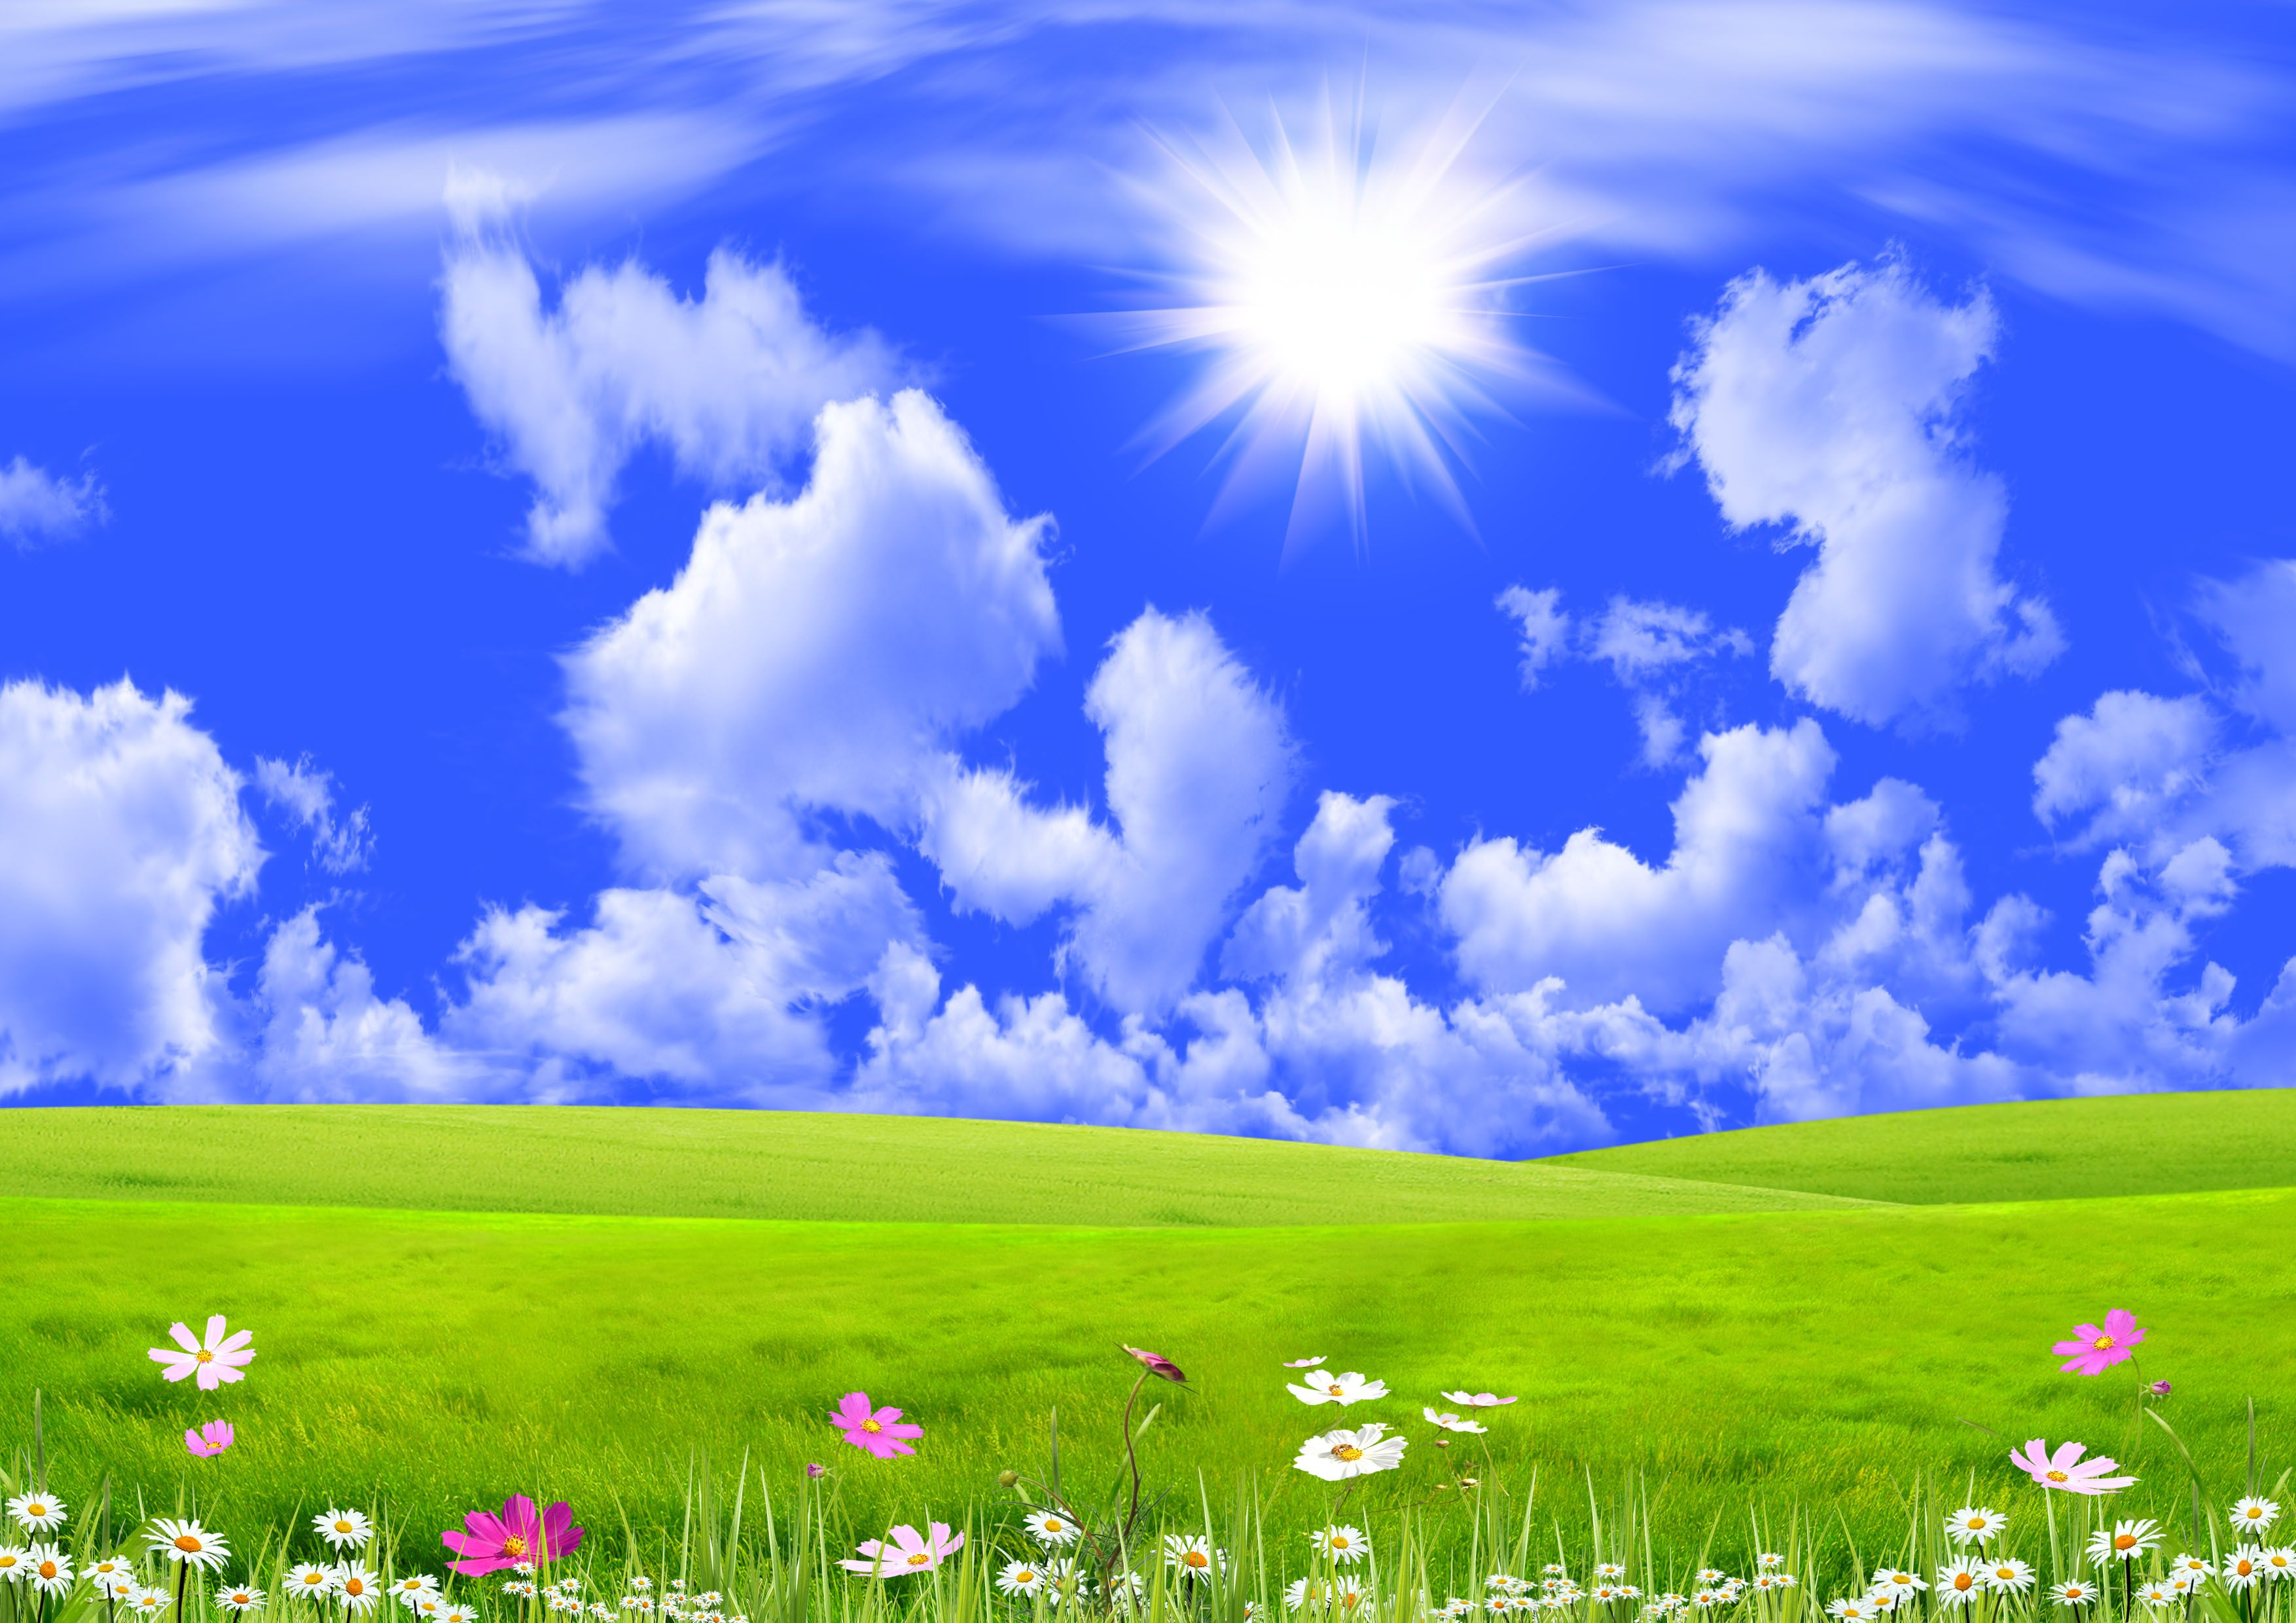 Sunshine Nature Background 137 21 Kb Beautiful Nature Wallpaper Beautiful Images Nature Nature Wallpaper